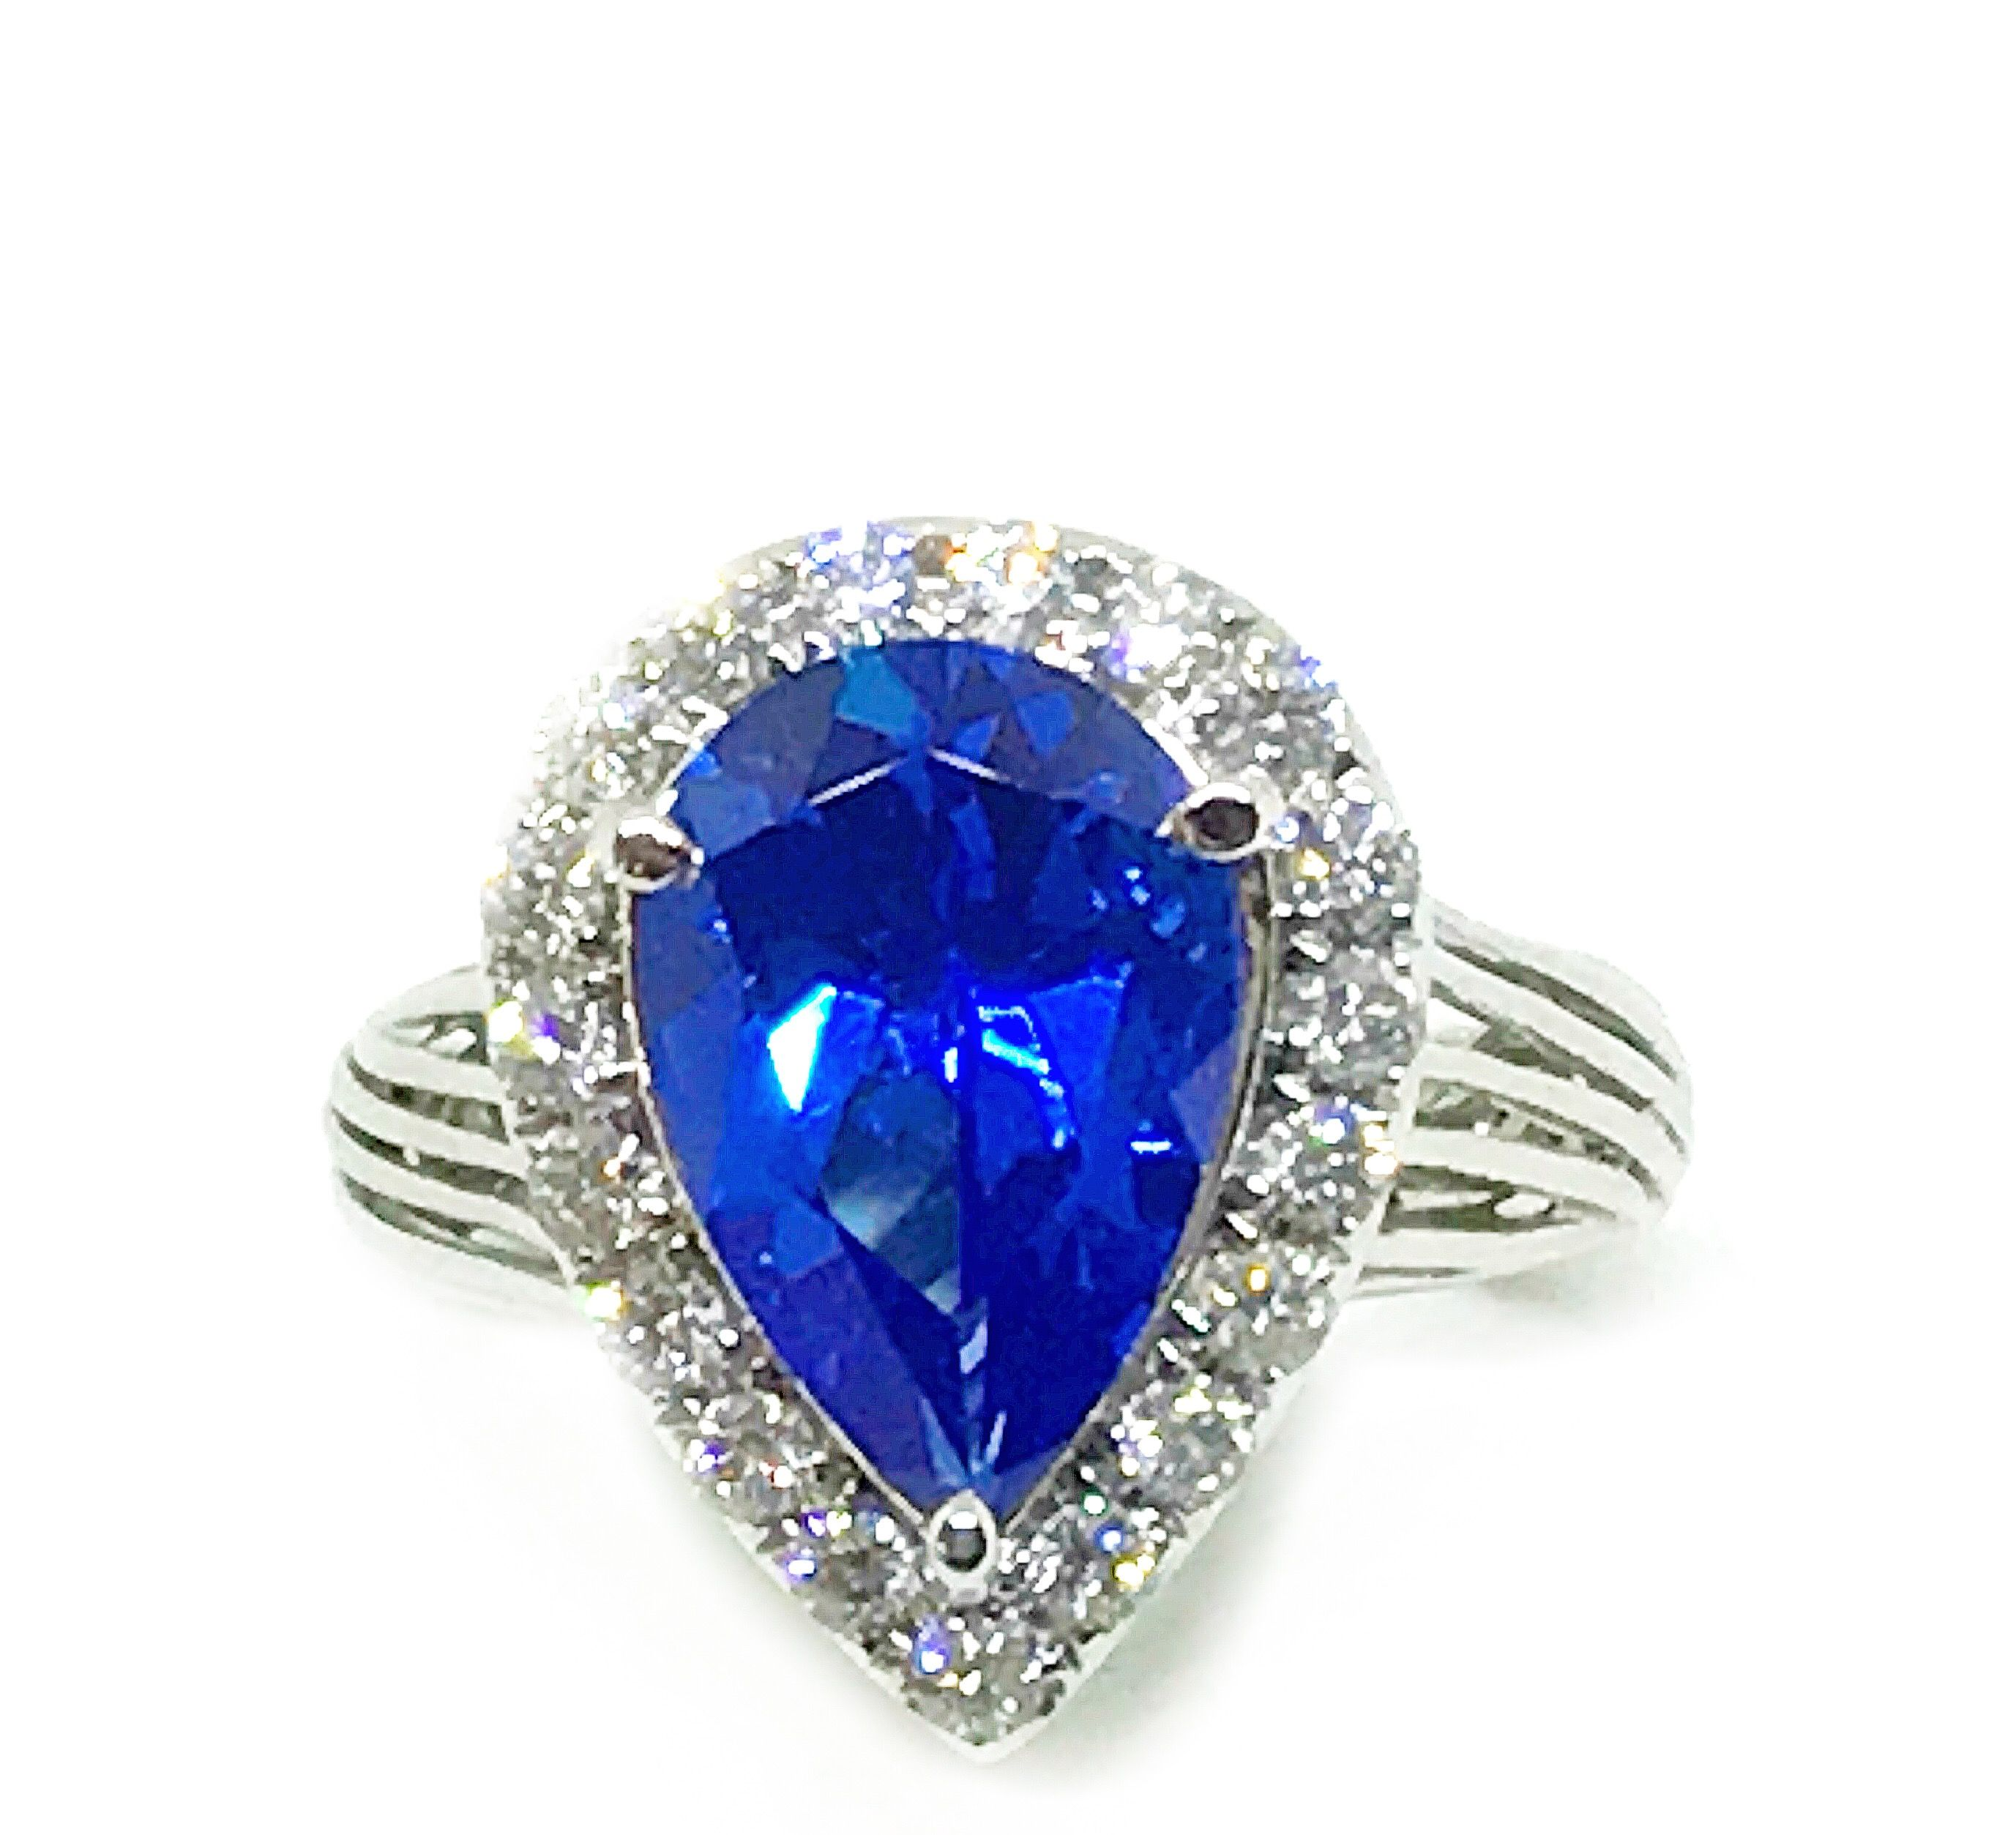 image engagement gemstone halo blue jewelry jewellery diamond gold topaz white rings ring boutique